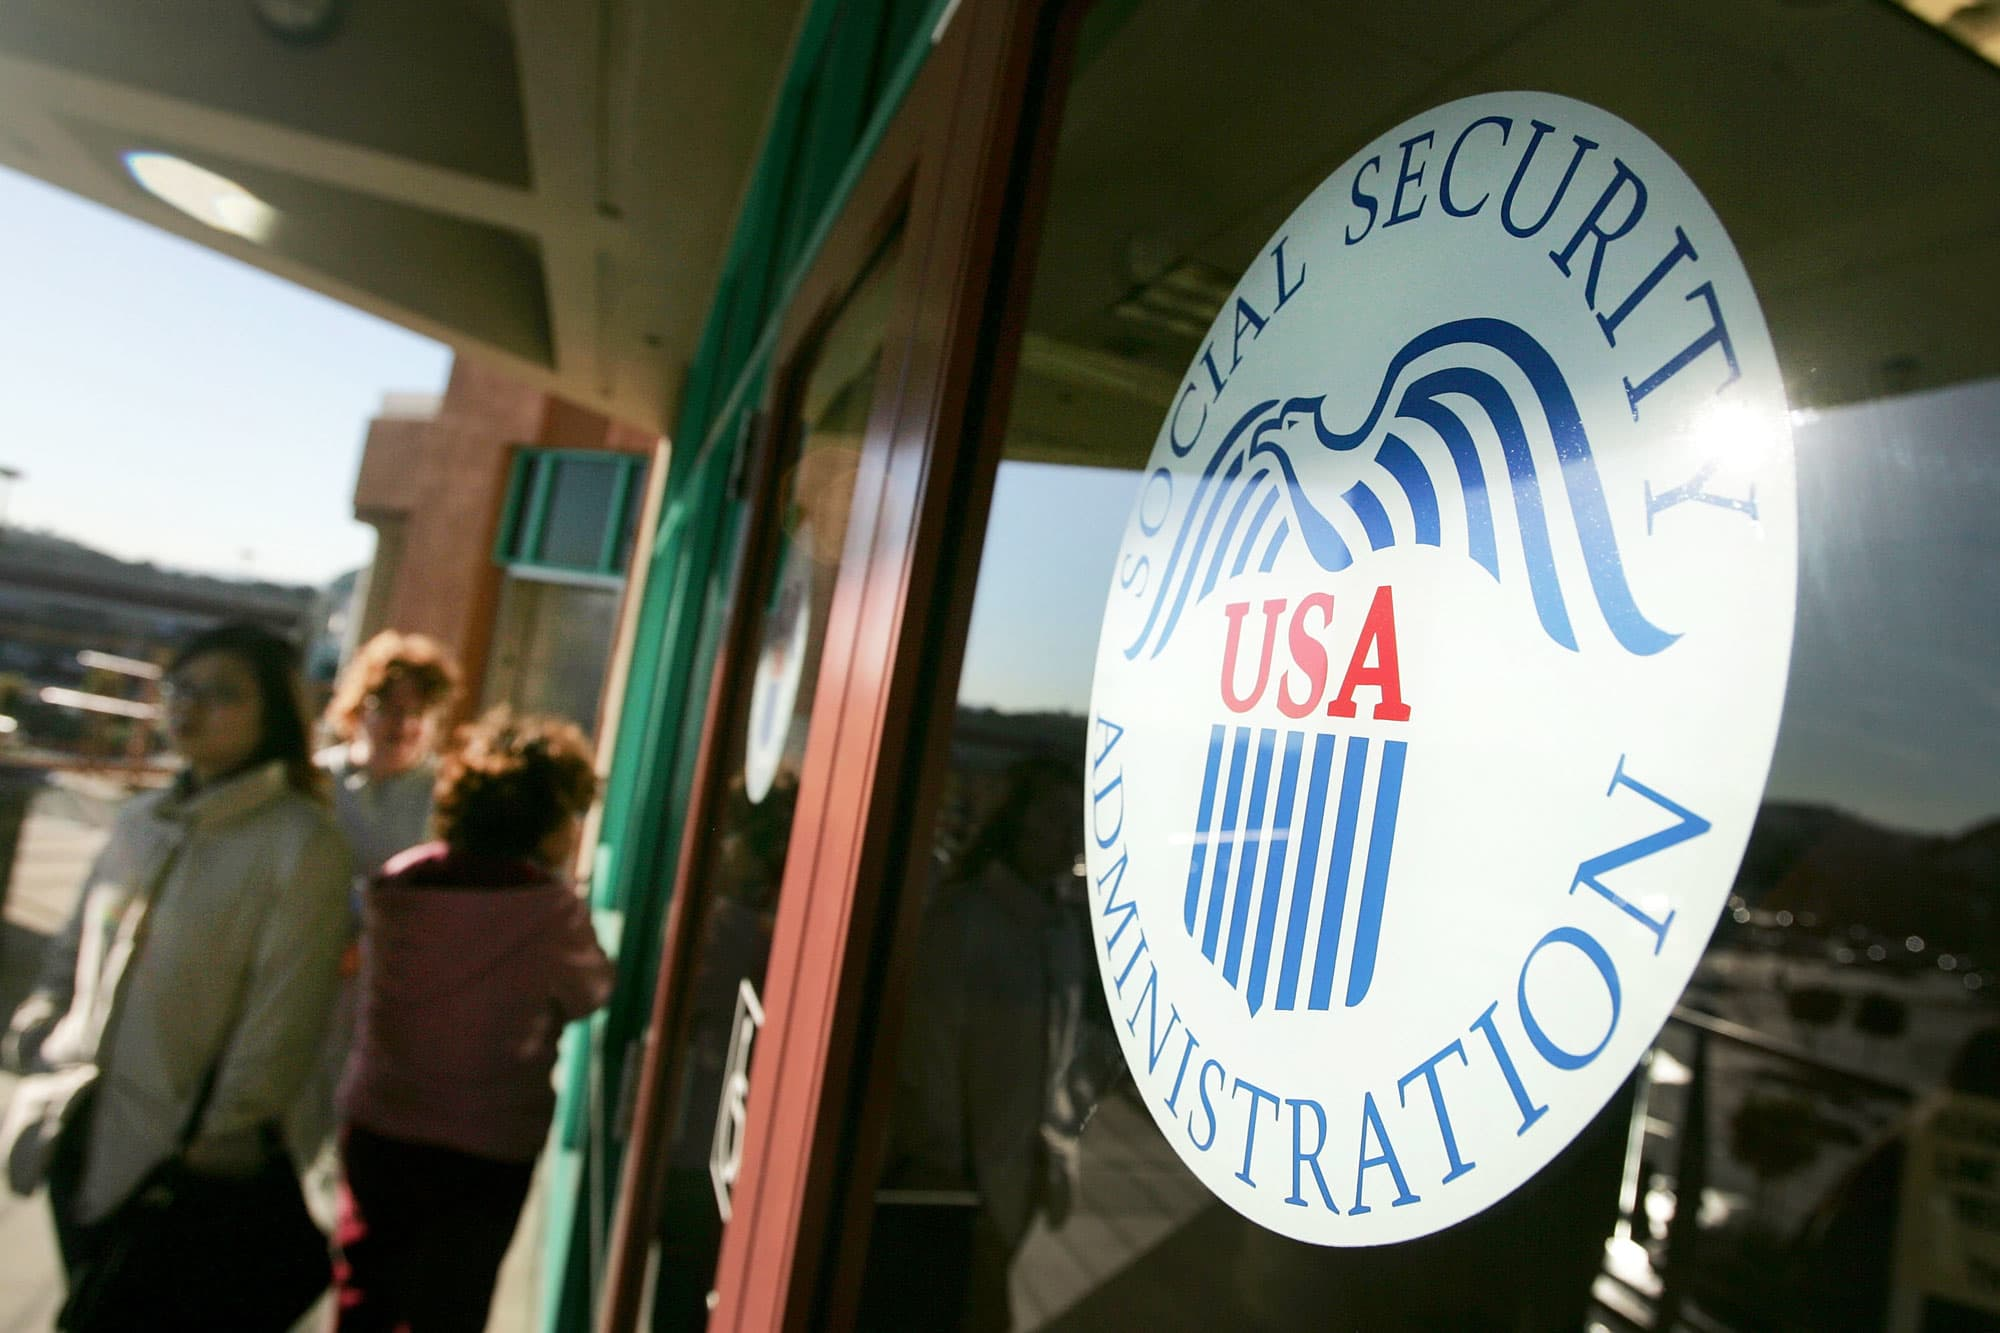 Social Security won't be able to pay full benefits by 2034. Now there's renewed pressure on Congress to come up with a fix